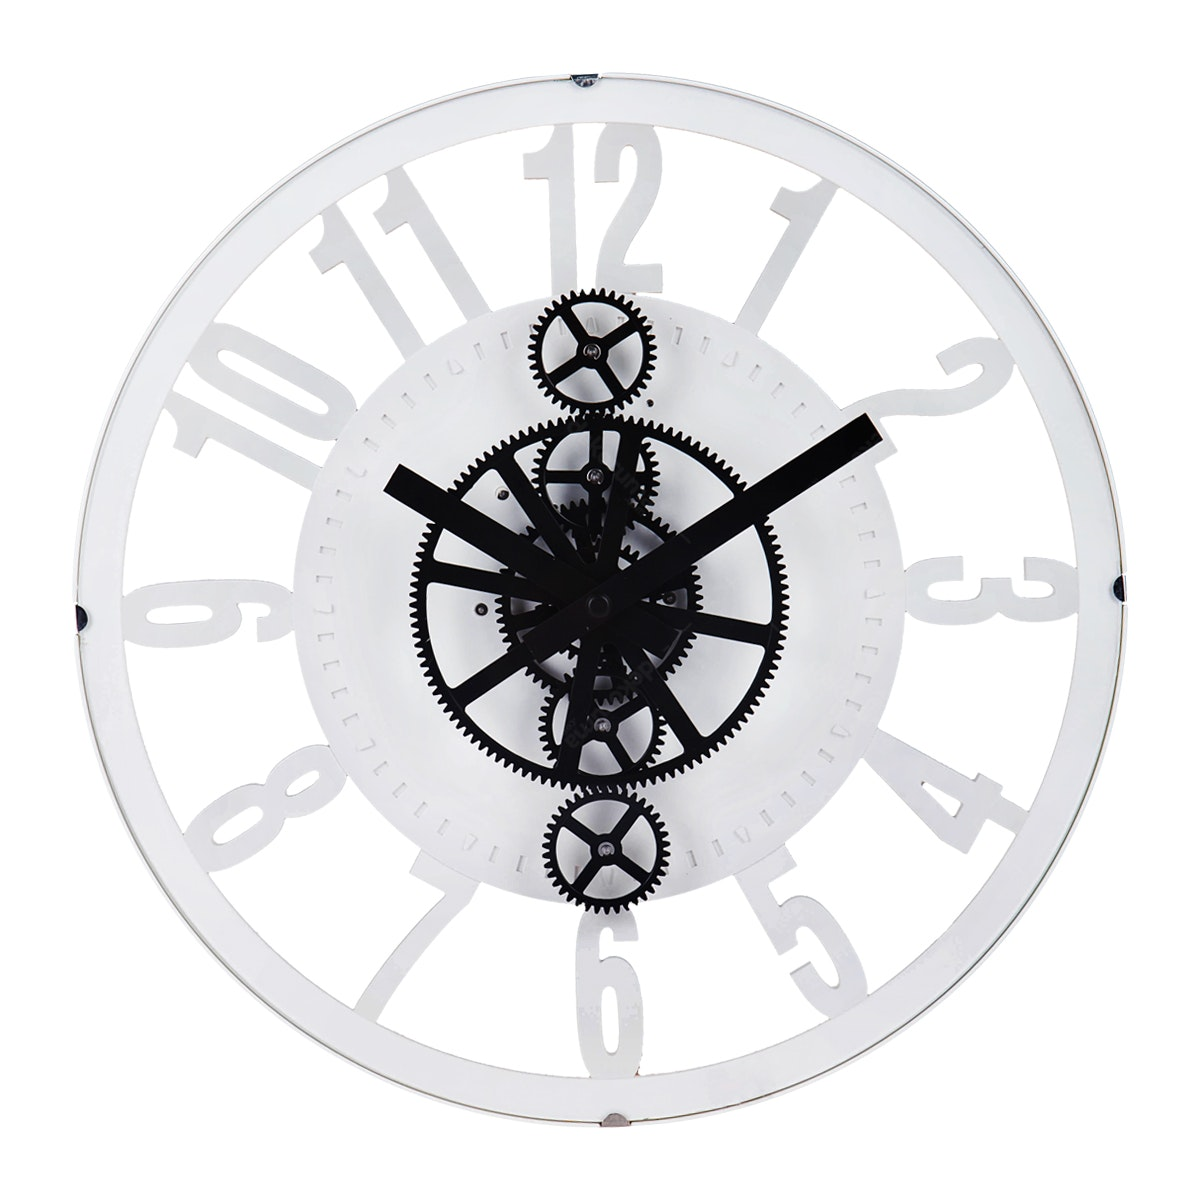 Gearclock Plastic Gear Wall Clock White